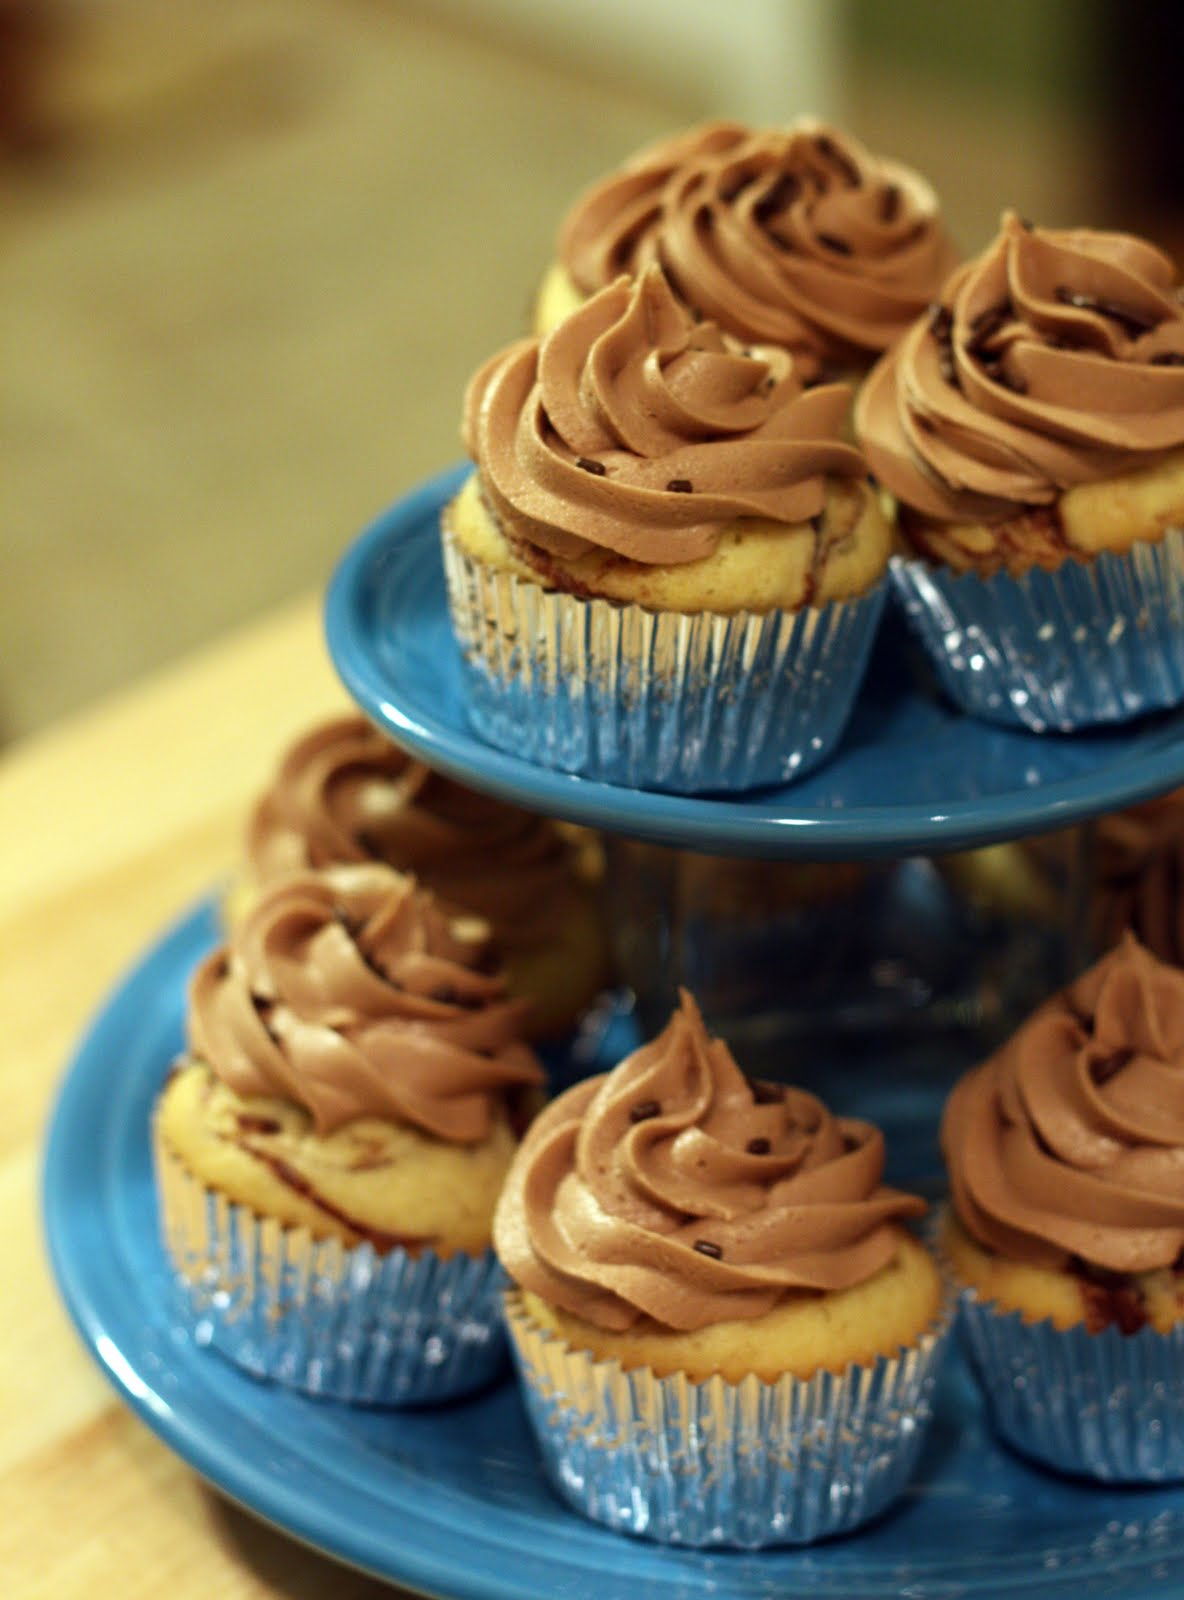 Nutella Cupcakes from The Doctor's Dishes, Desserts & Decor